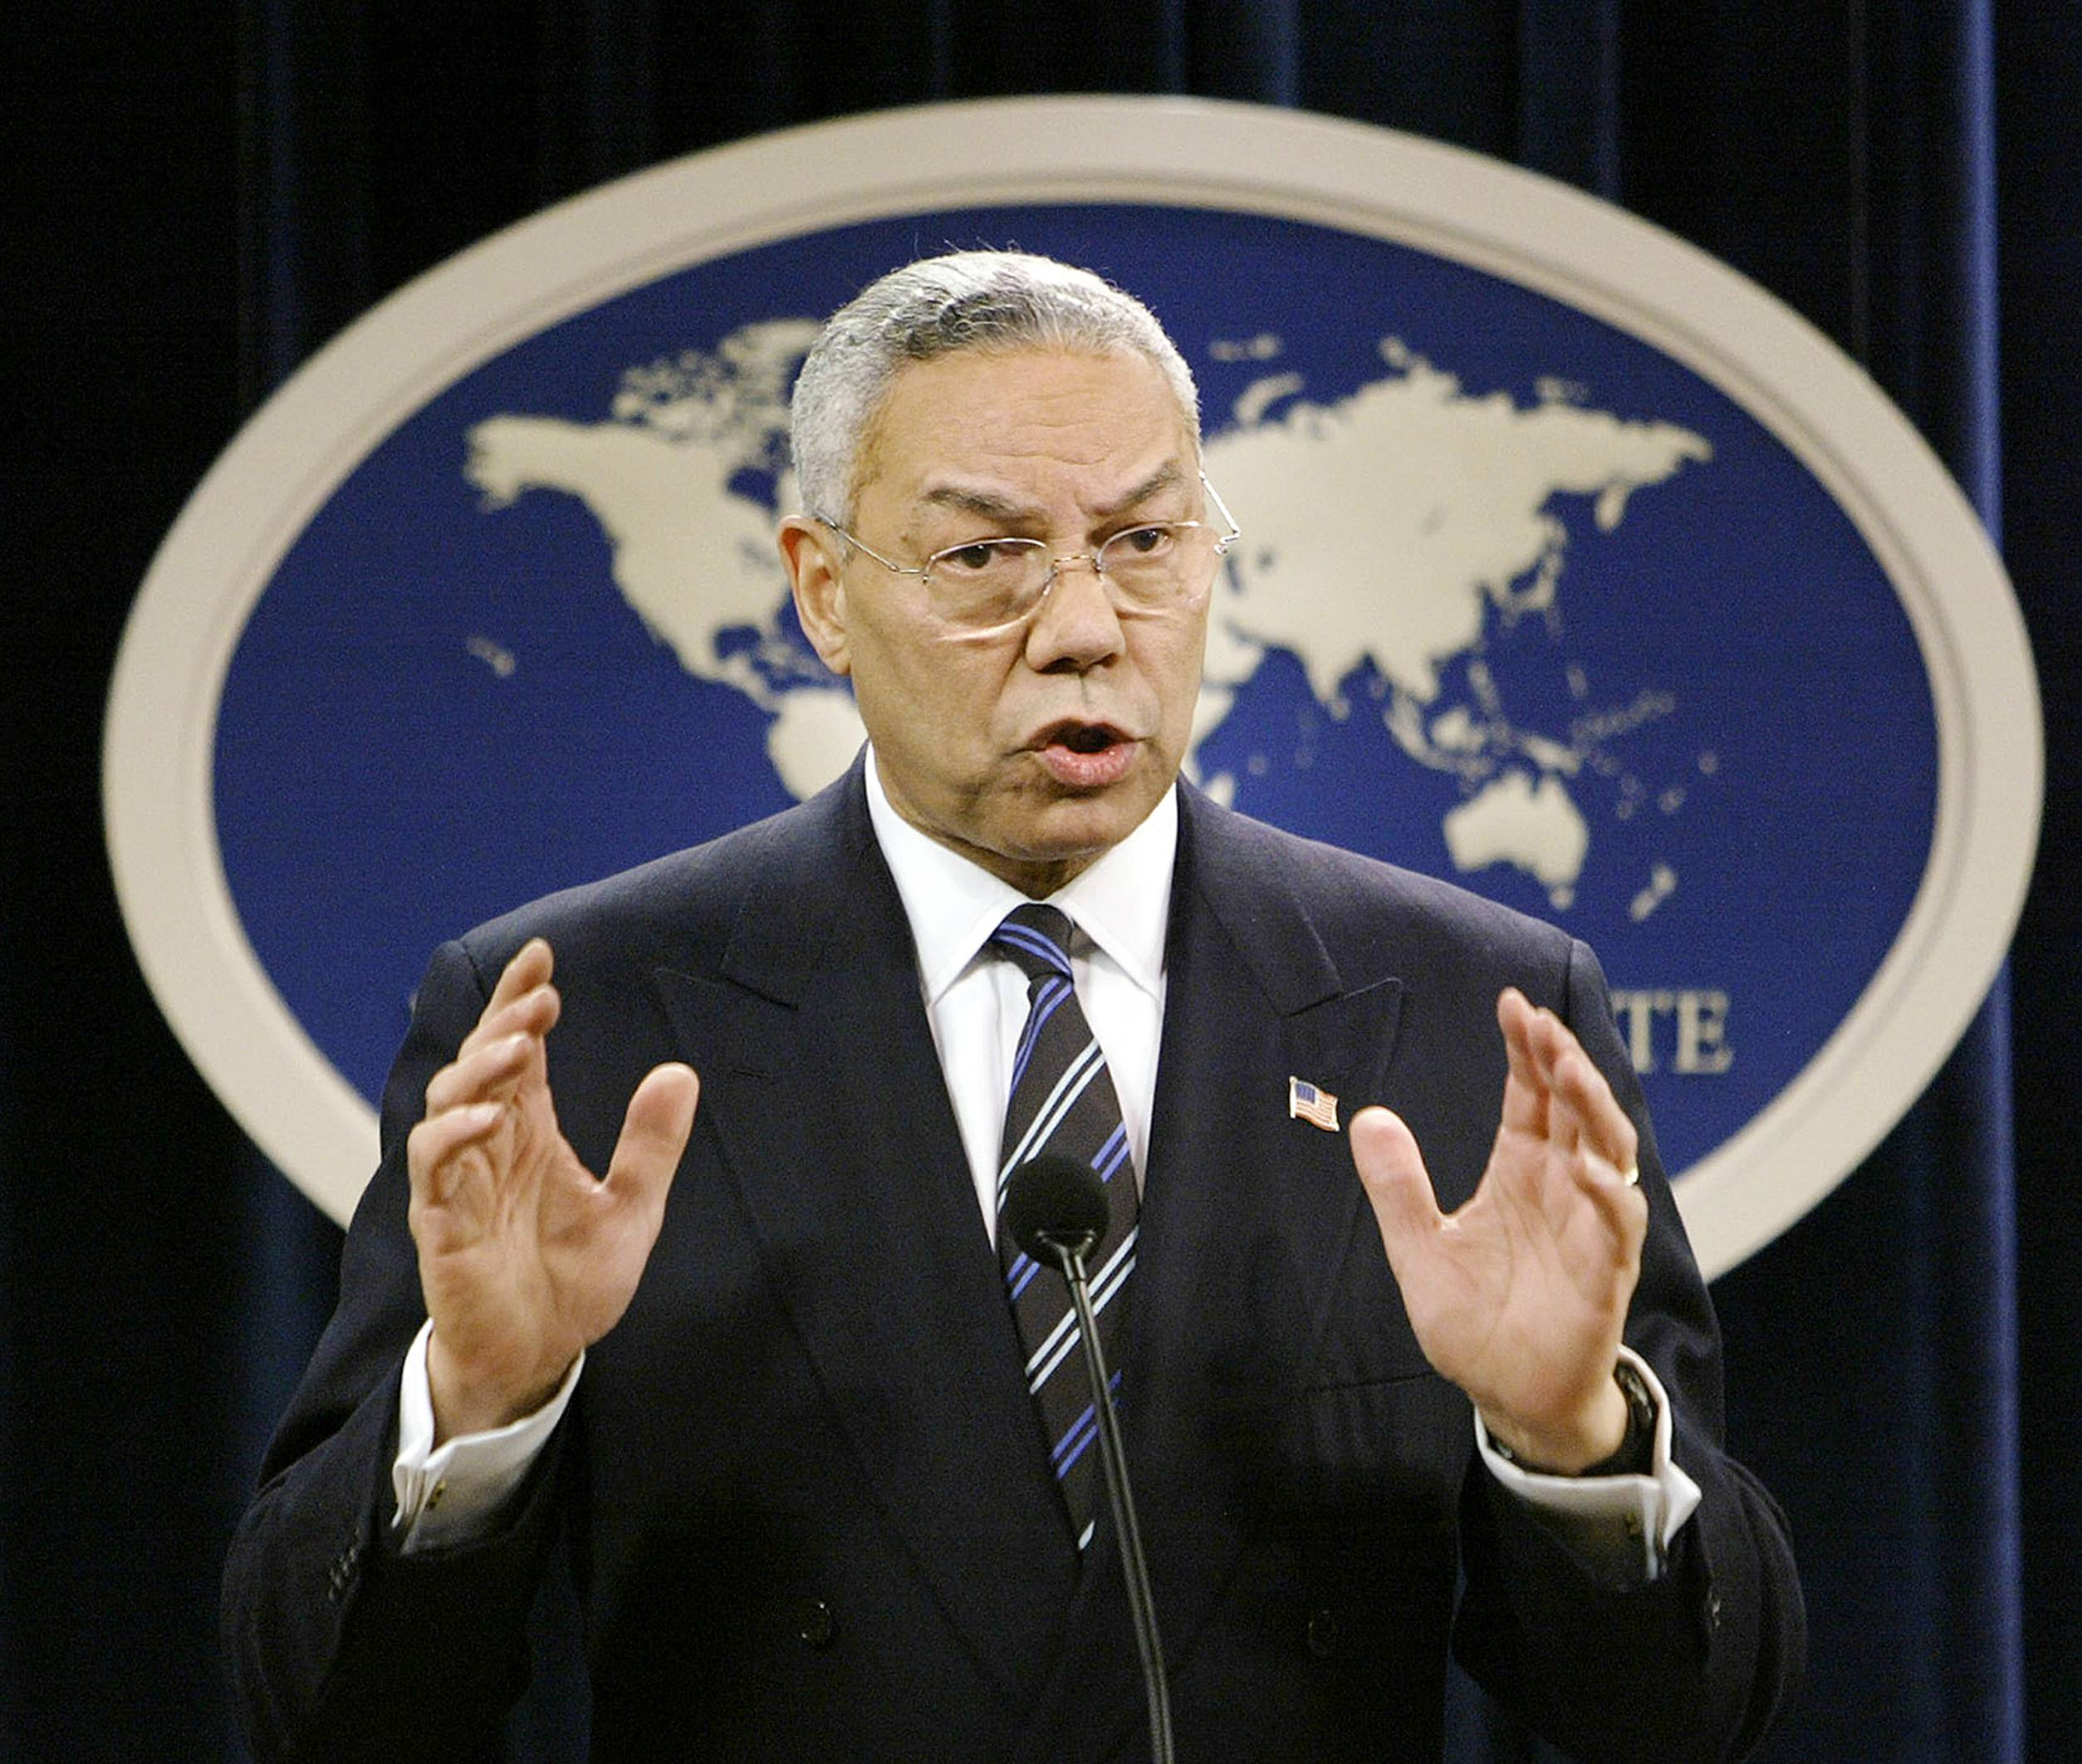 Then-Secretary of State Colin Powell, seen here in 2004, may initially have been kept in the dark by the CIA regarding harsh interrogation techniques and secret prisons that the U.S. was employing.